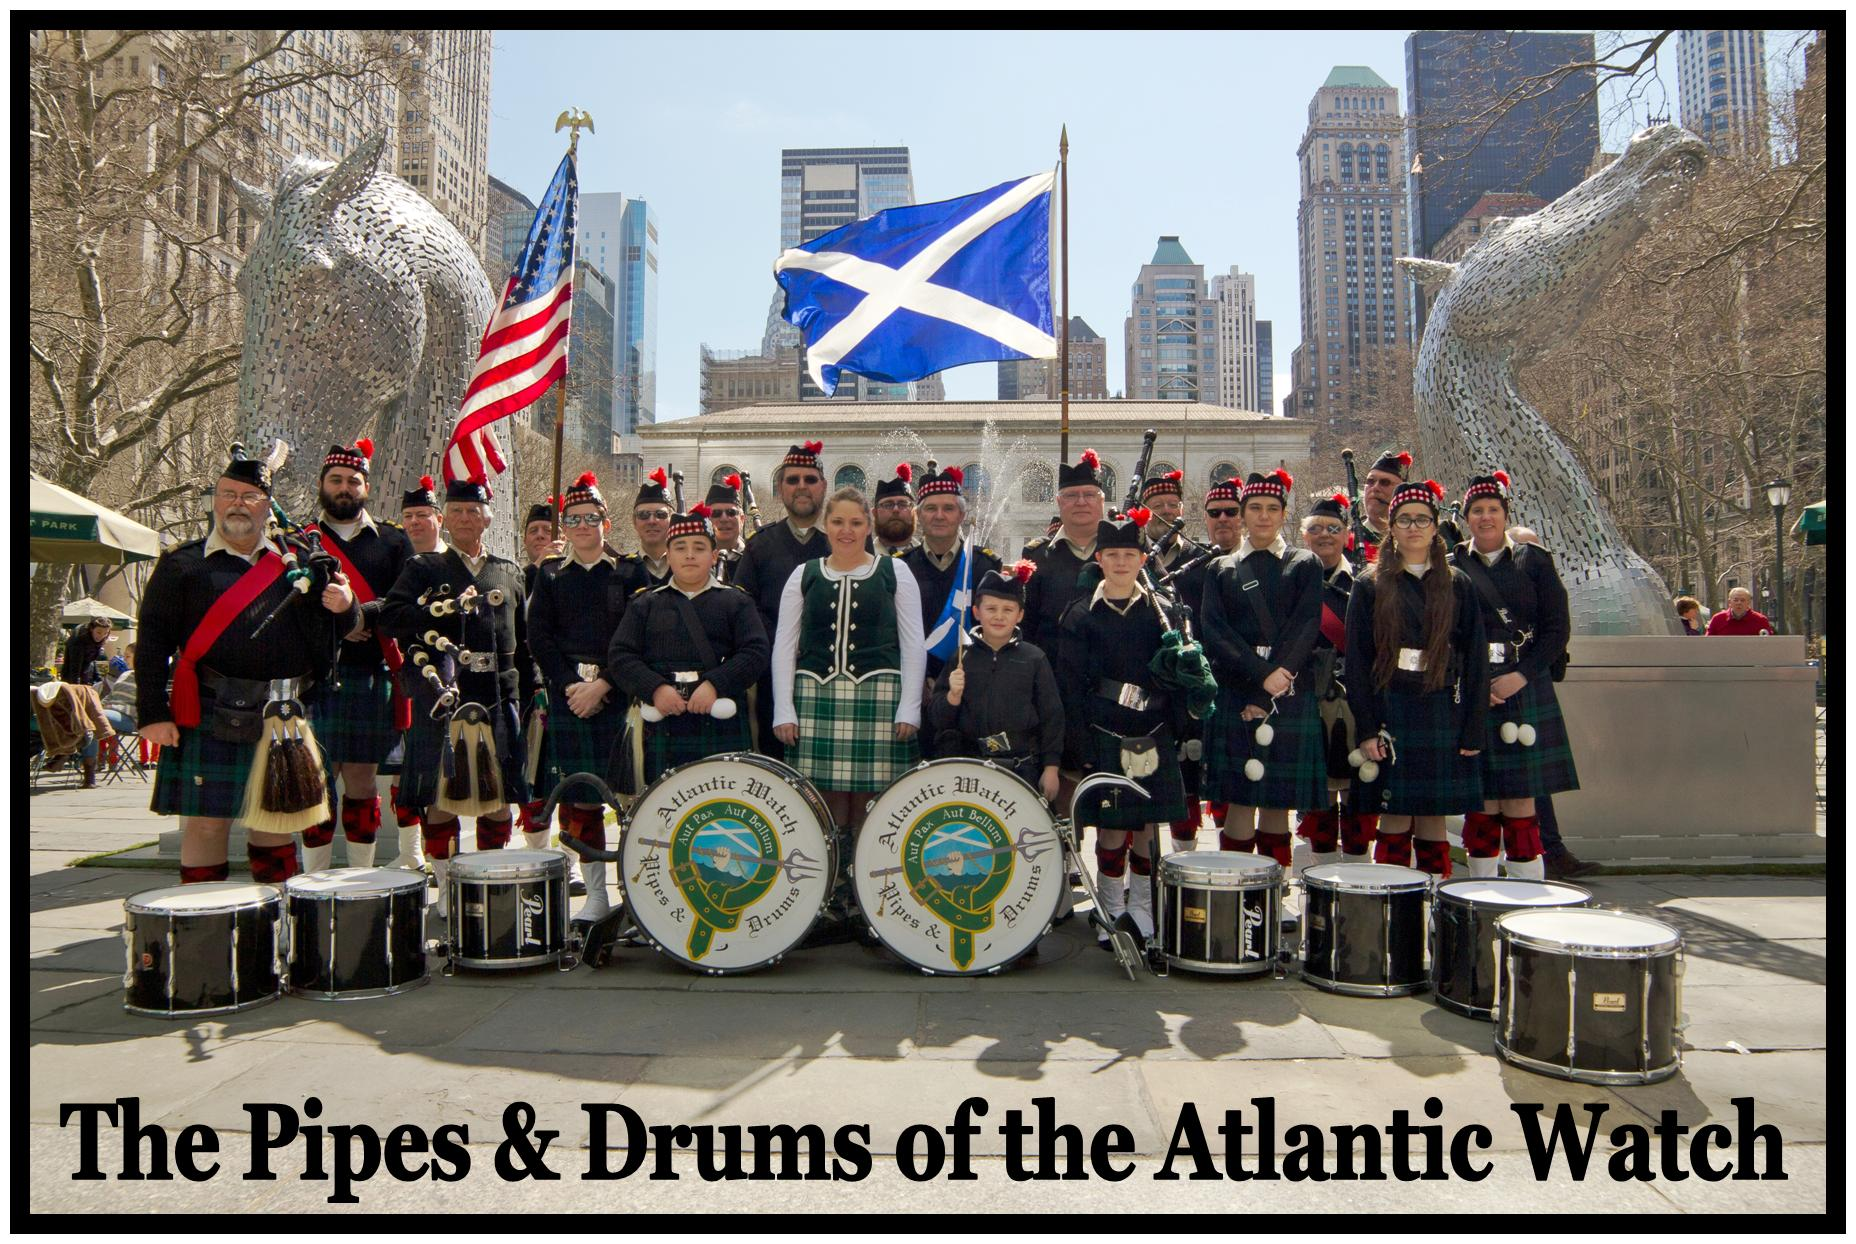 ATLANTIC WATCH PIPES & DRUMS